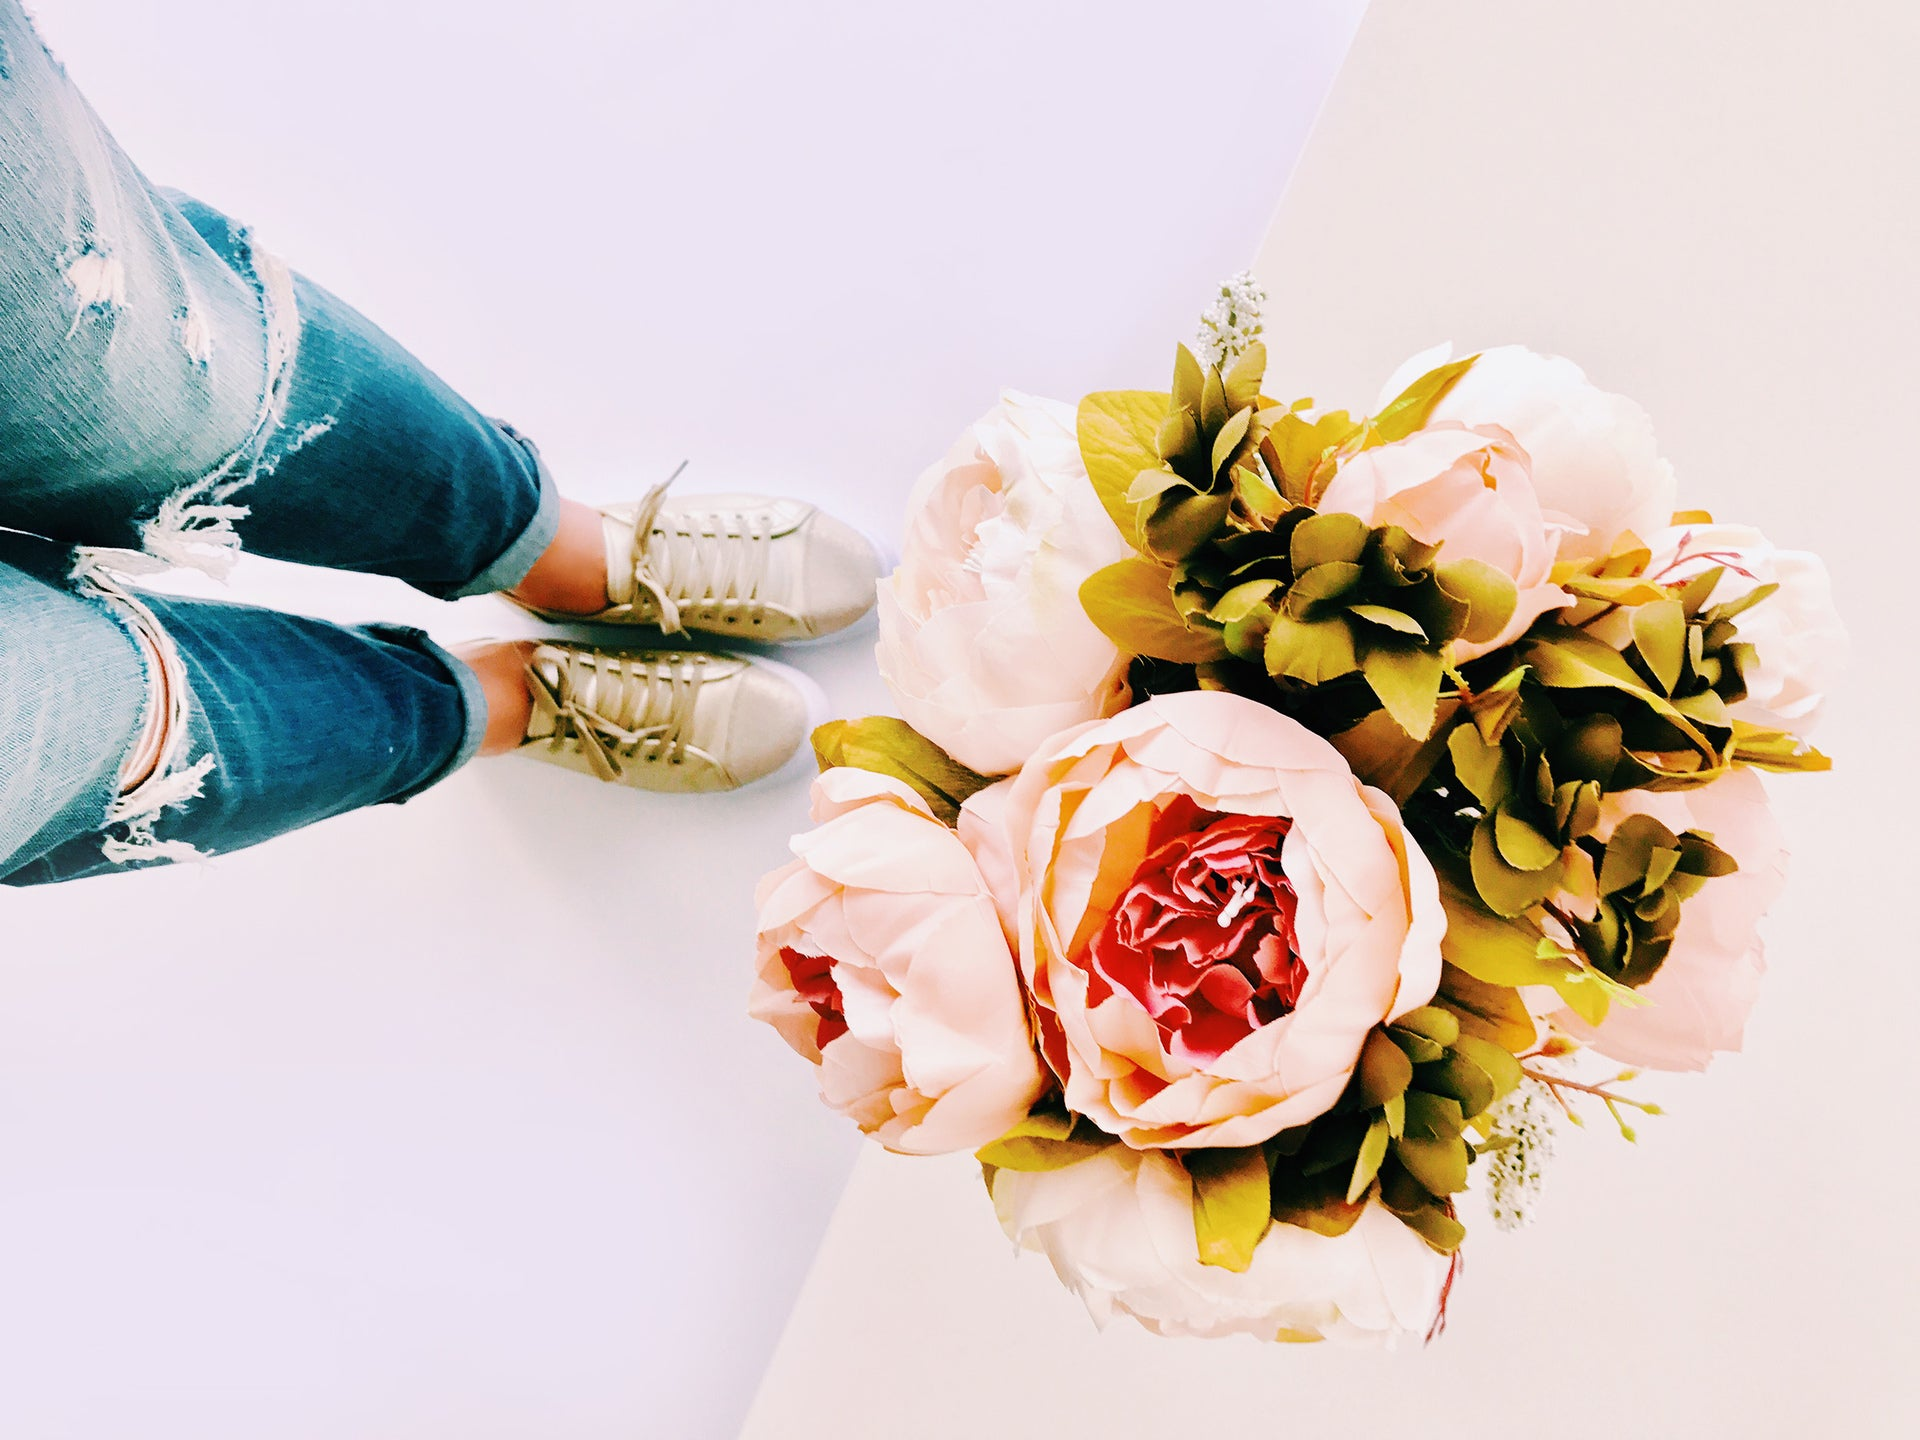 contact form flower bouquet distressed jeans gold sports shoes